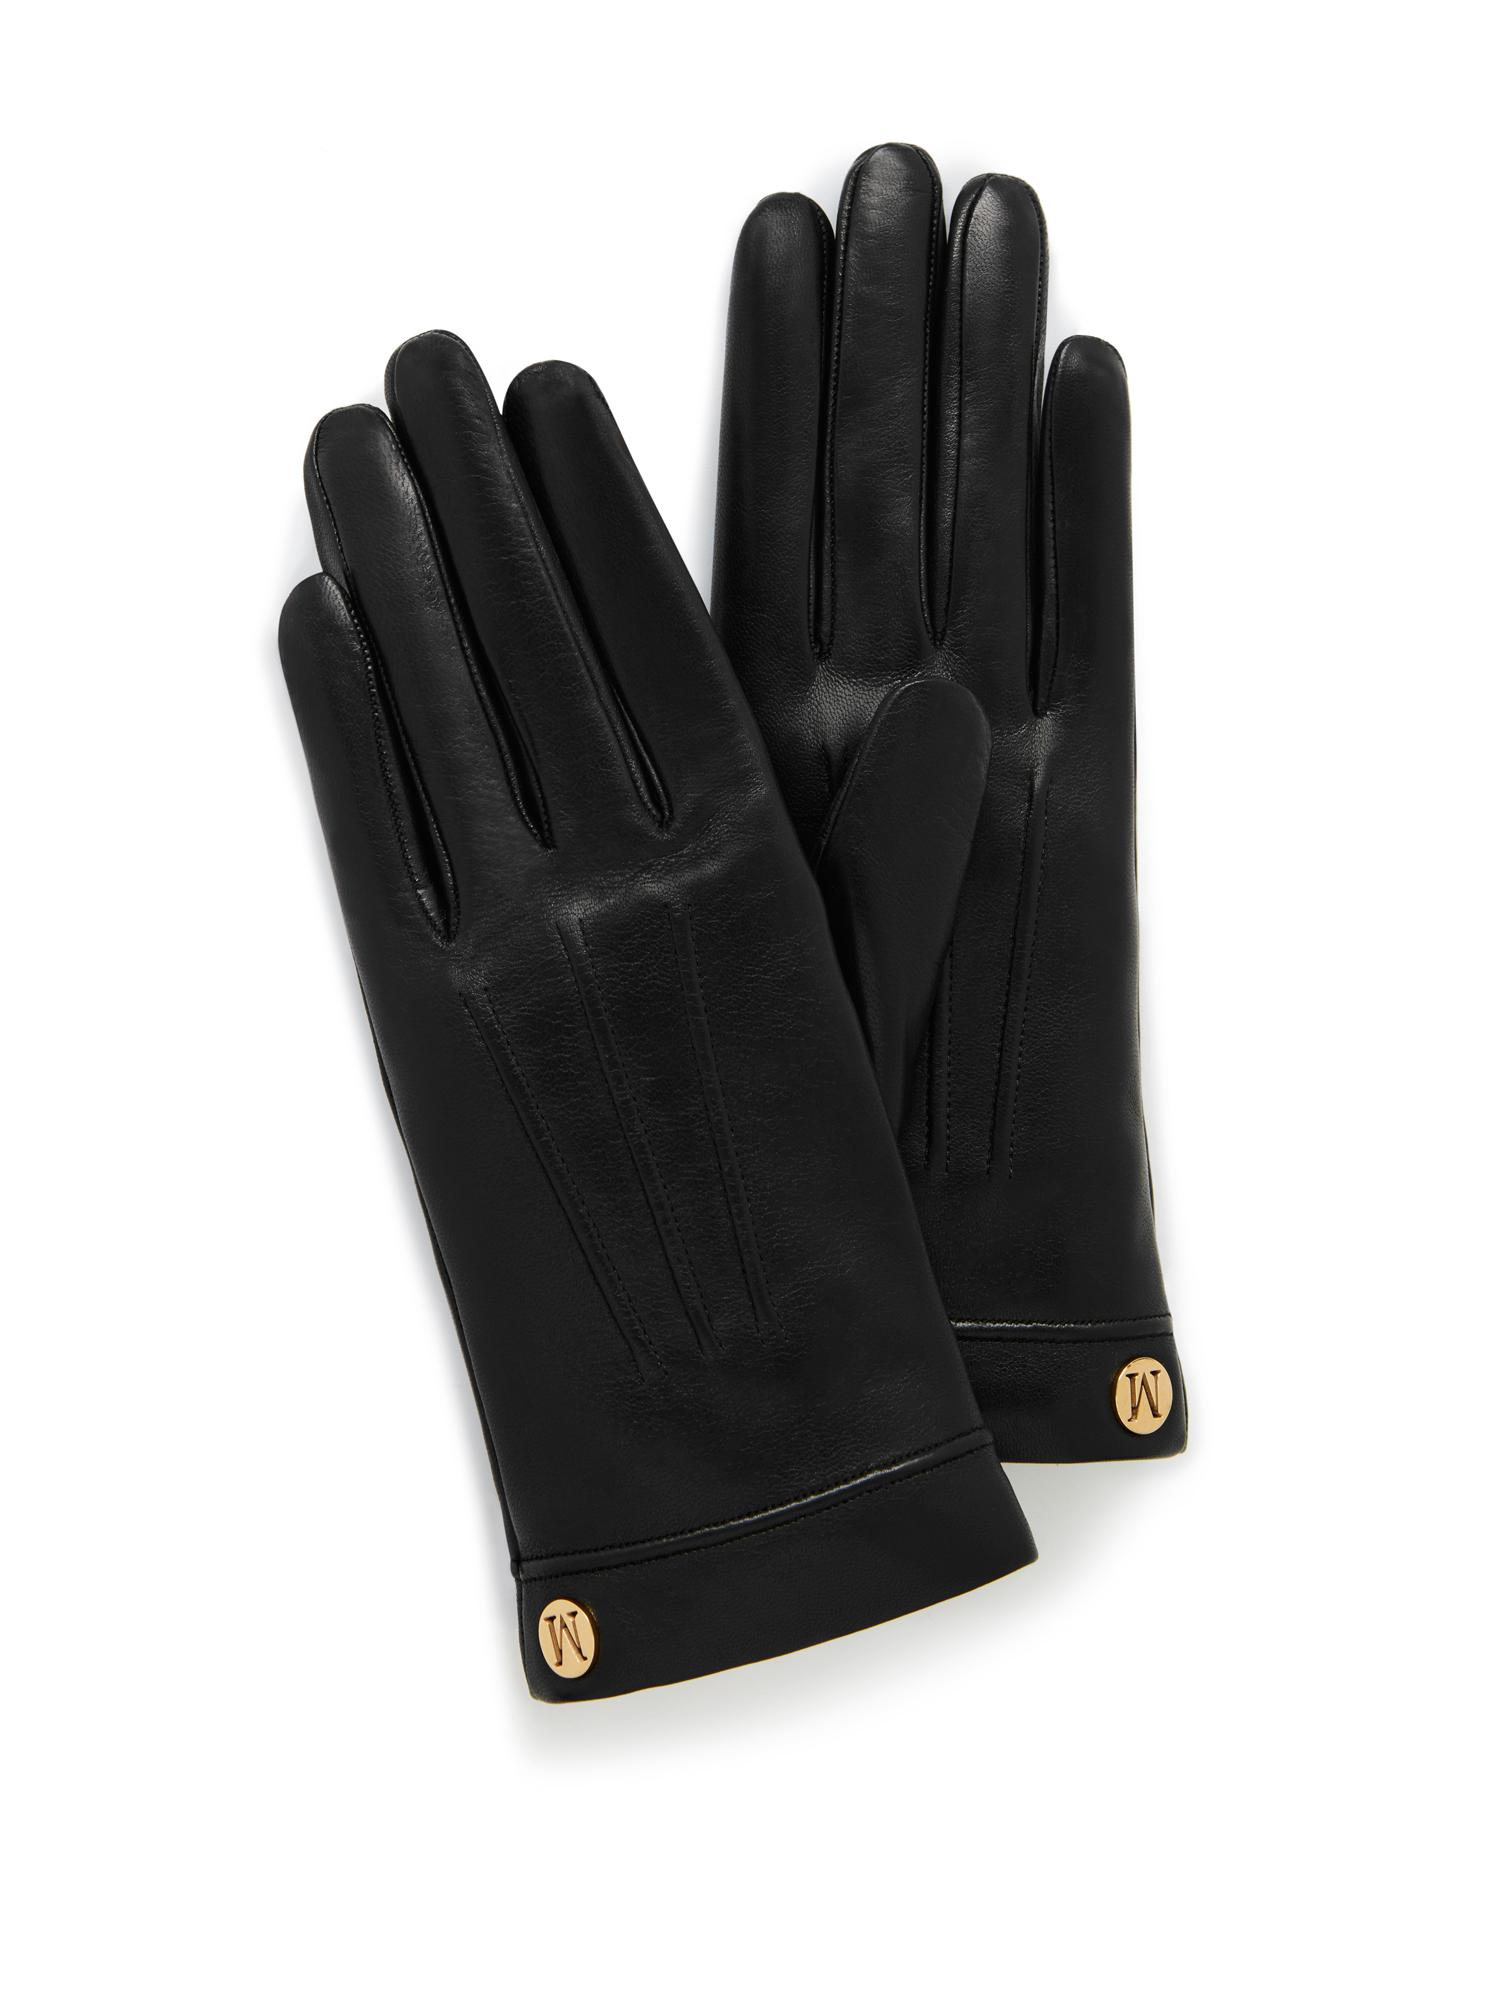 Driving gloves debenhams - Mulberry Soft Nappa Leather Gloves